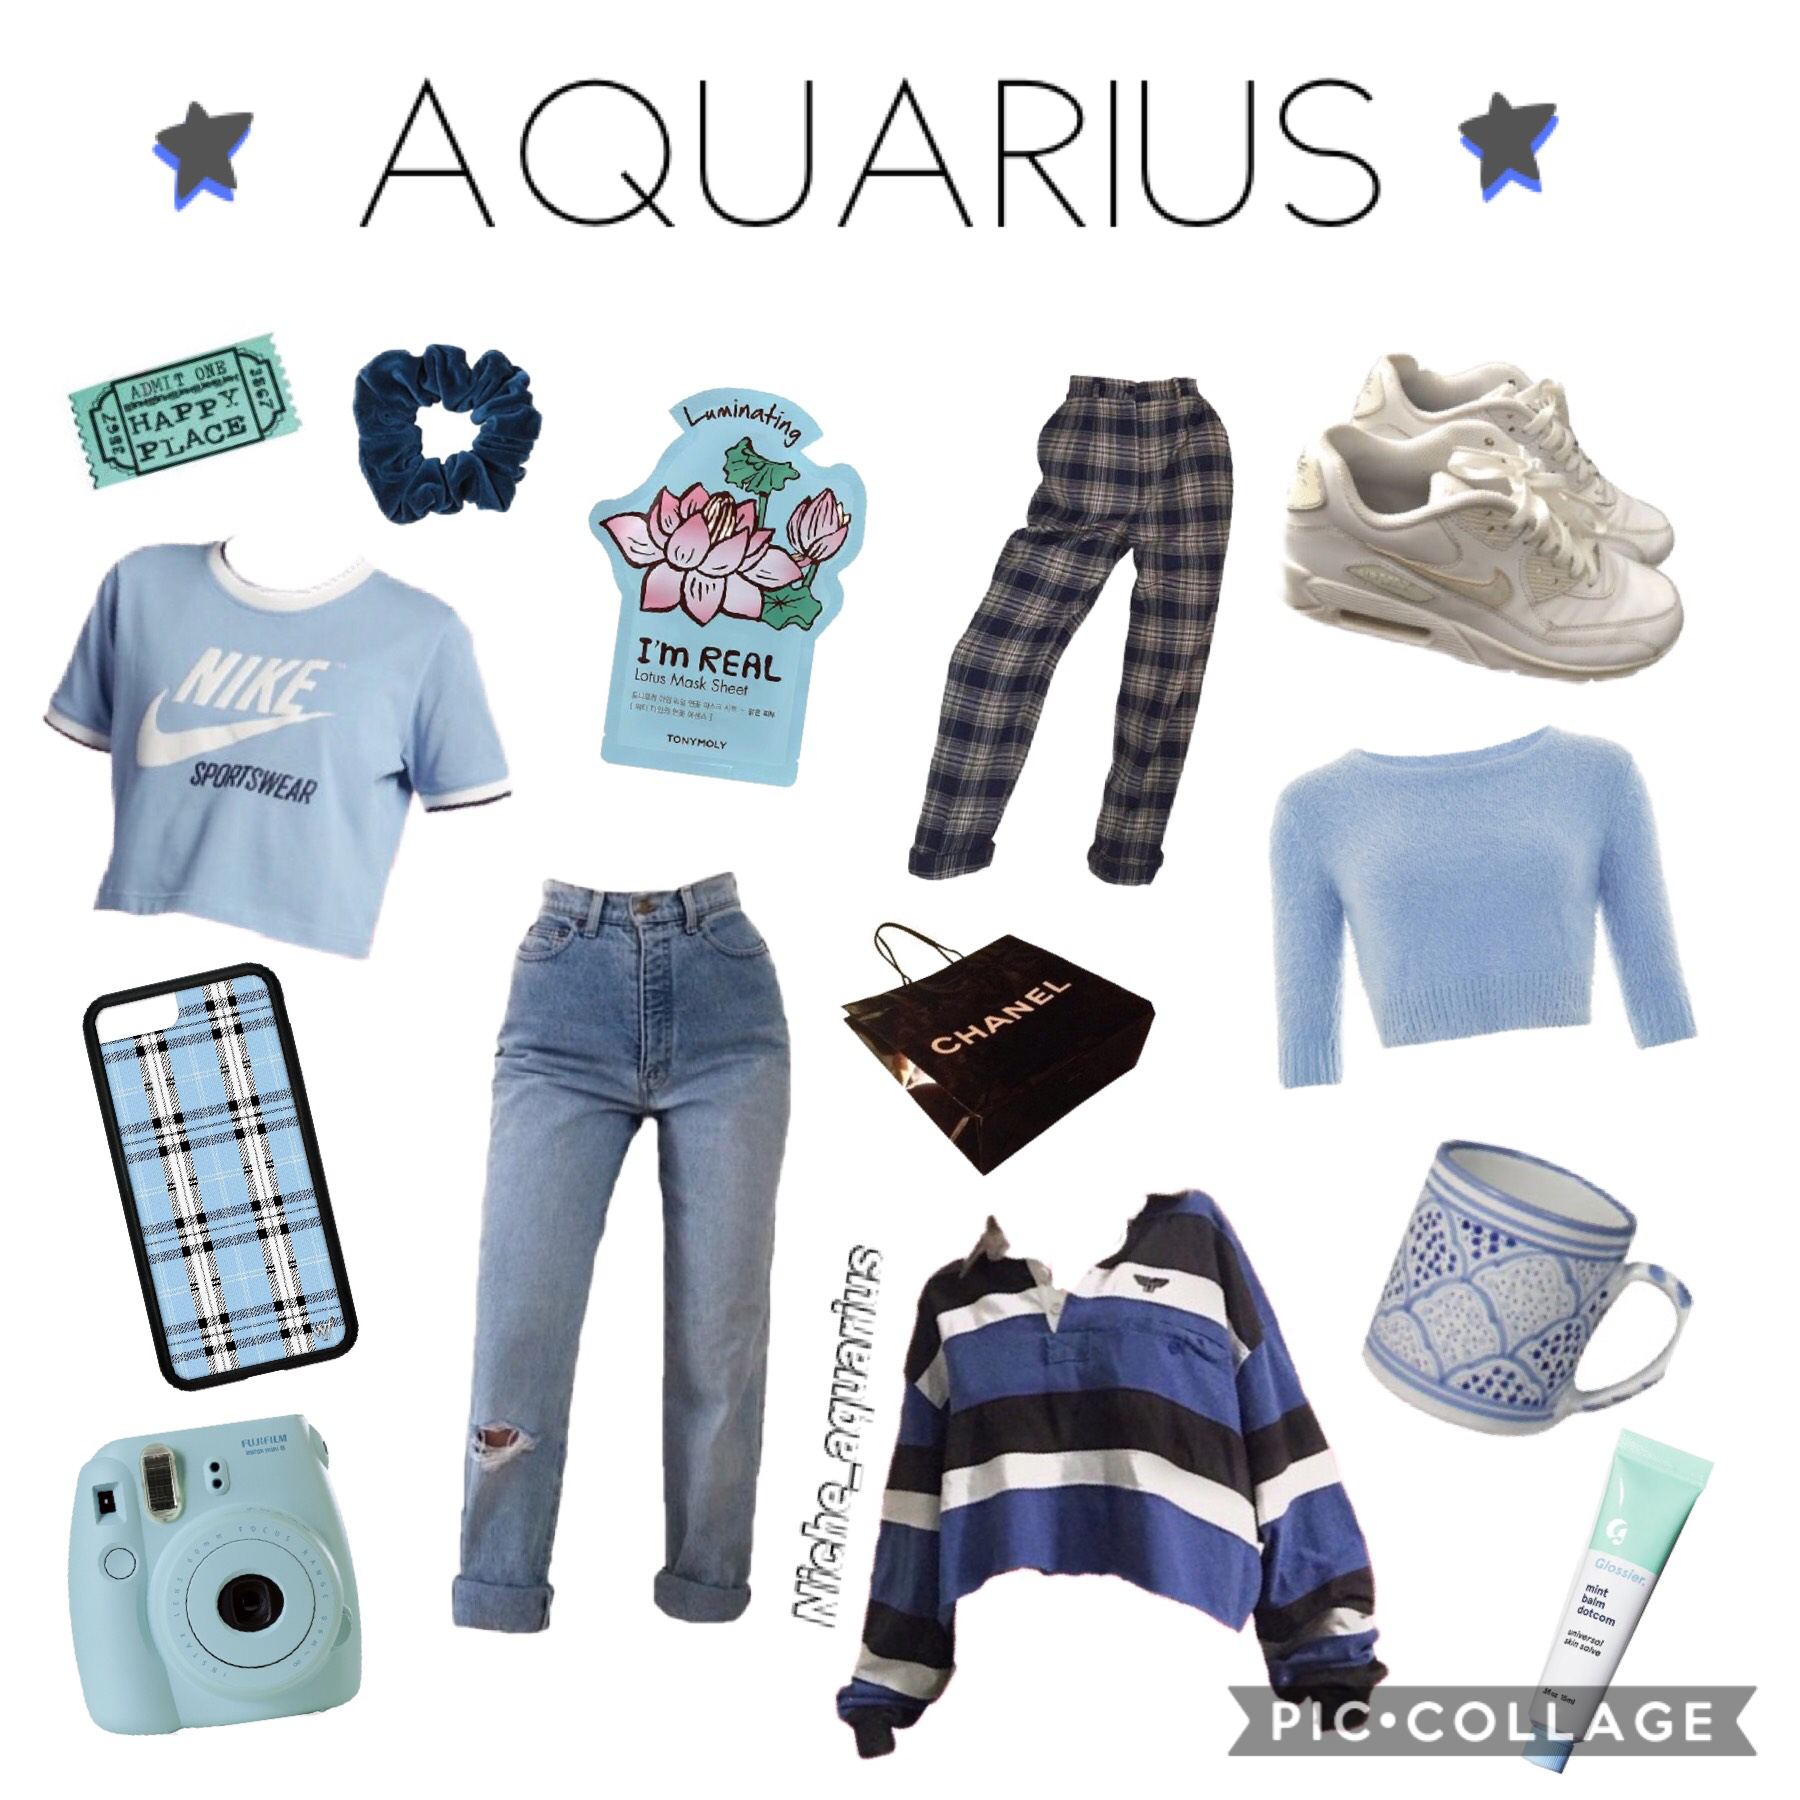 ♒️💙TAP💙♒️  I tried to do something a little different this time so I hope you like it💕 I did Aquarius first cos I'm an Aquarius and I feel like they are always forgotten😂 I also tried to do an animation on it but it didn't let me share it with it☹️